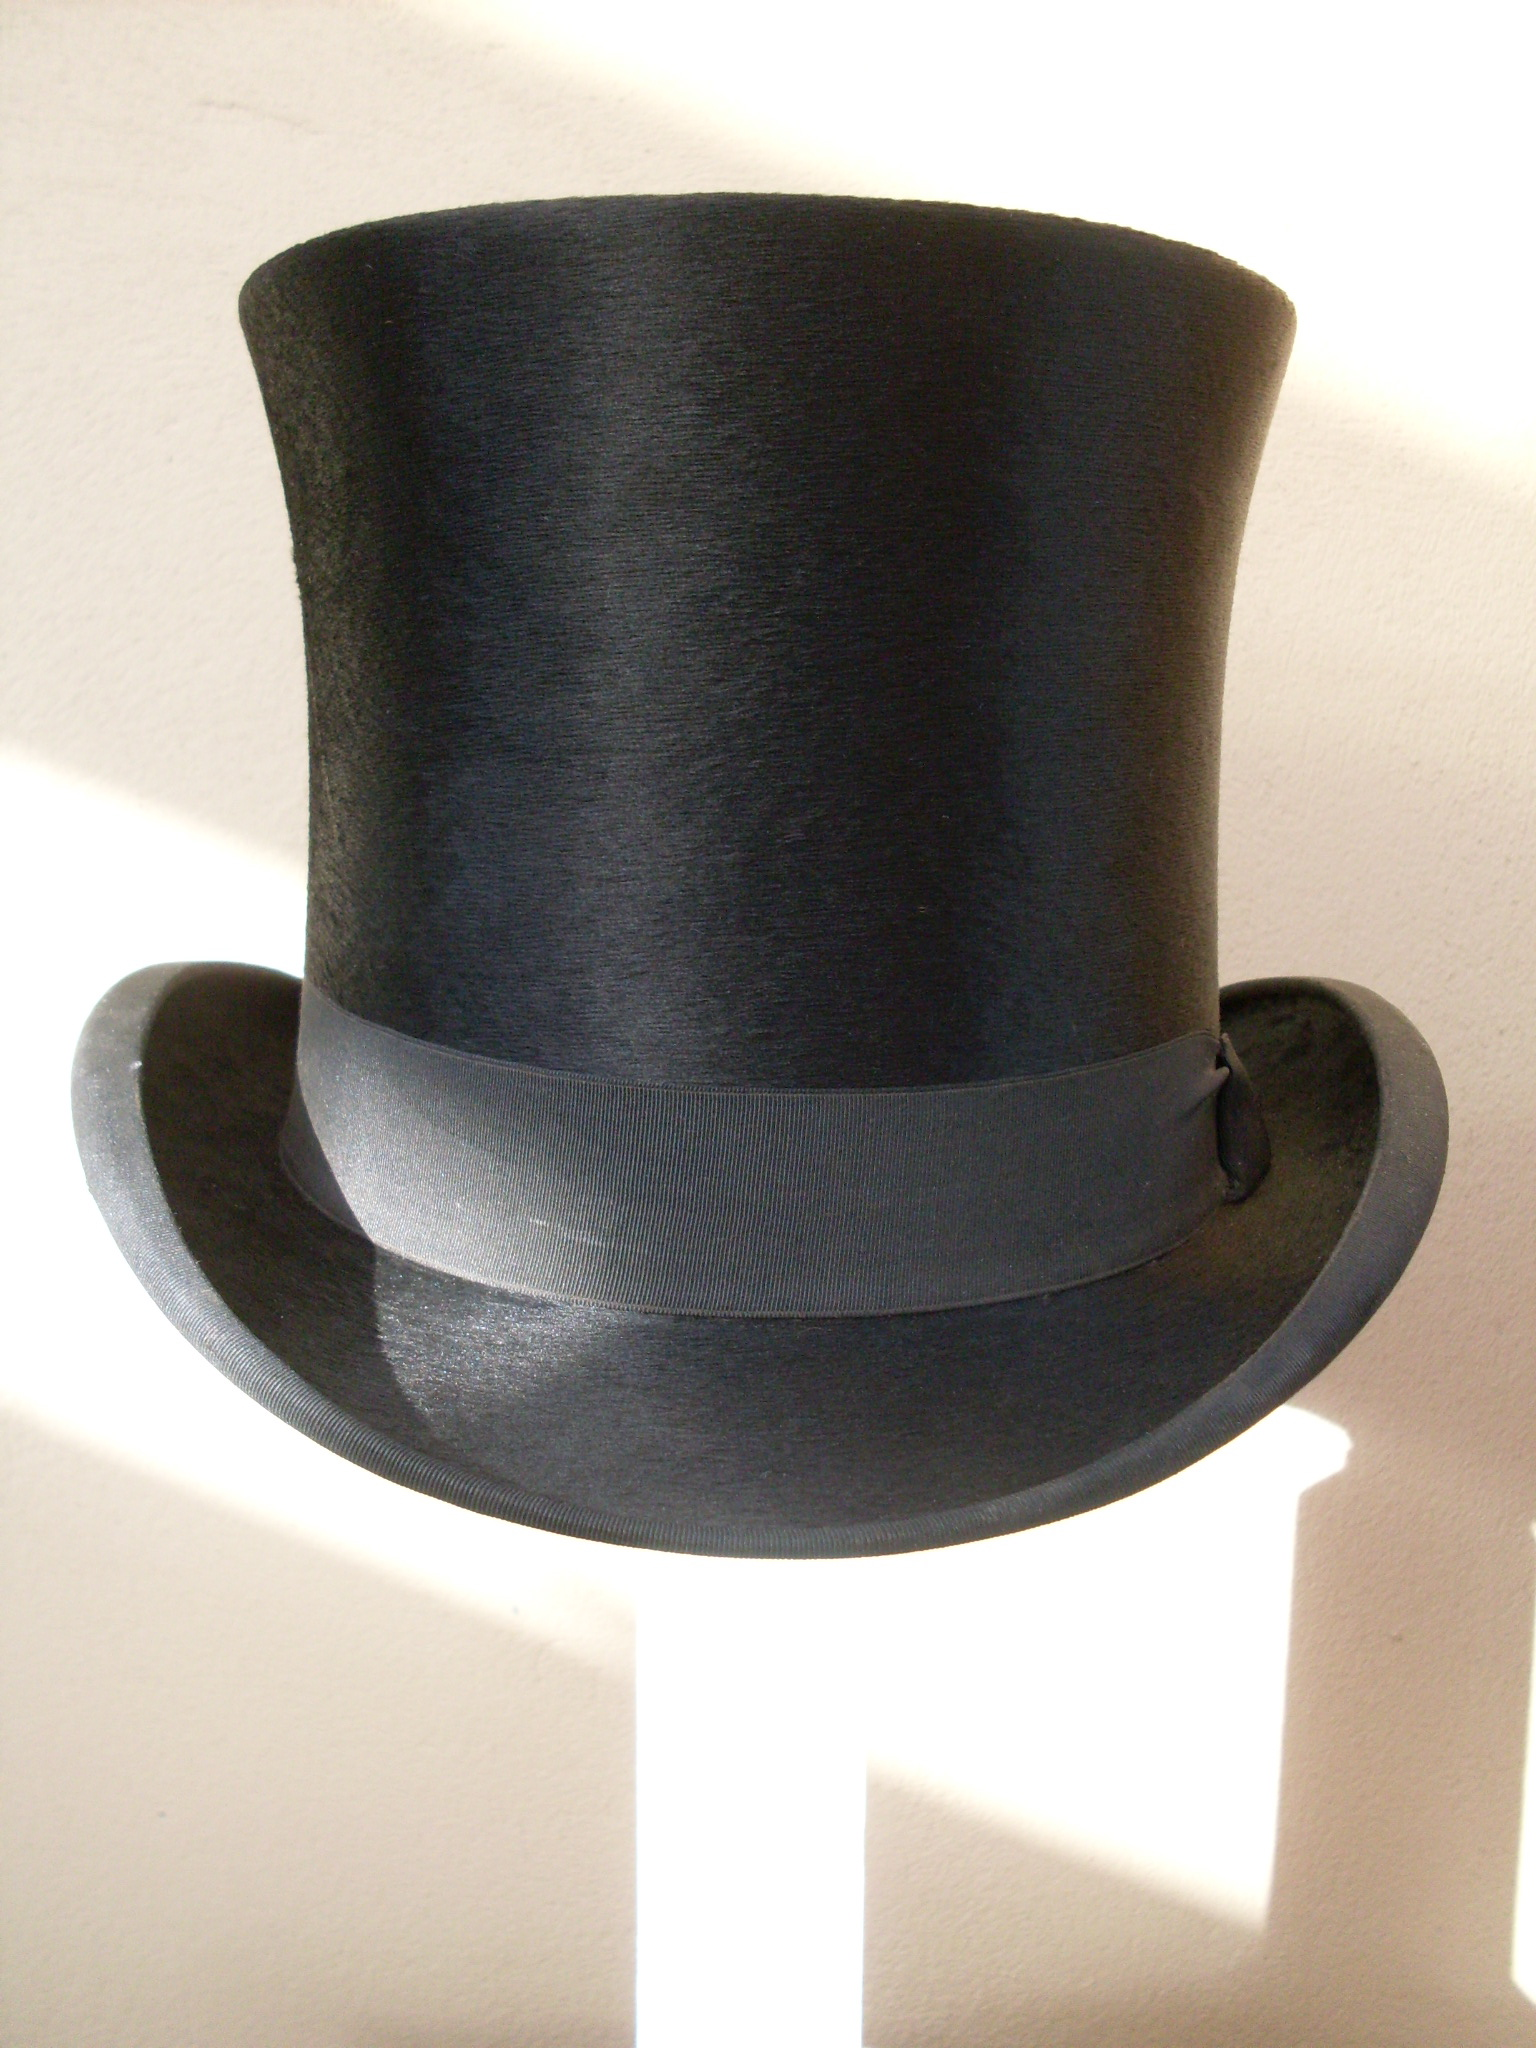 042f707b1 Top Hats | Andrews & Pygott: The Morning Dress Guide